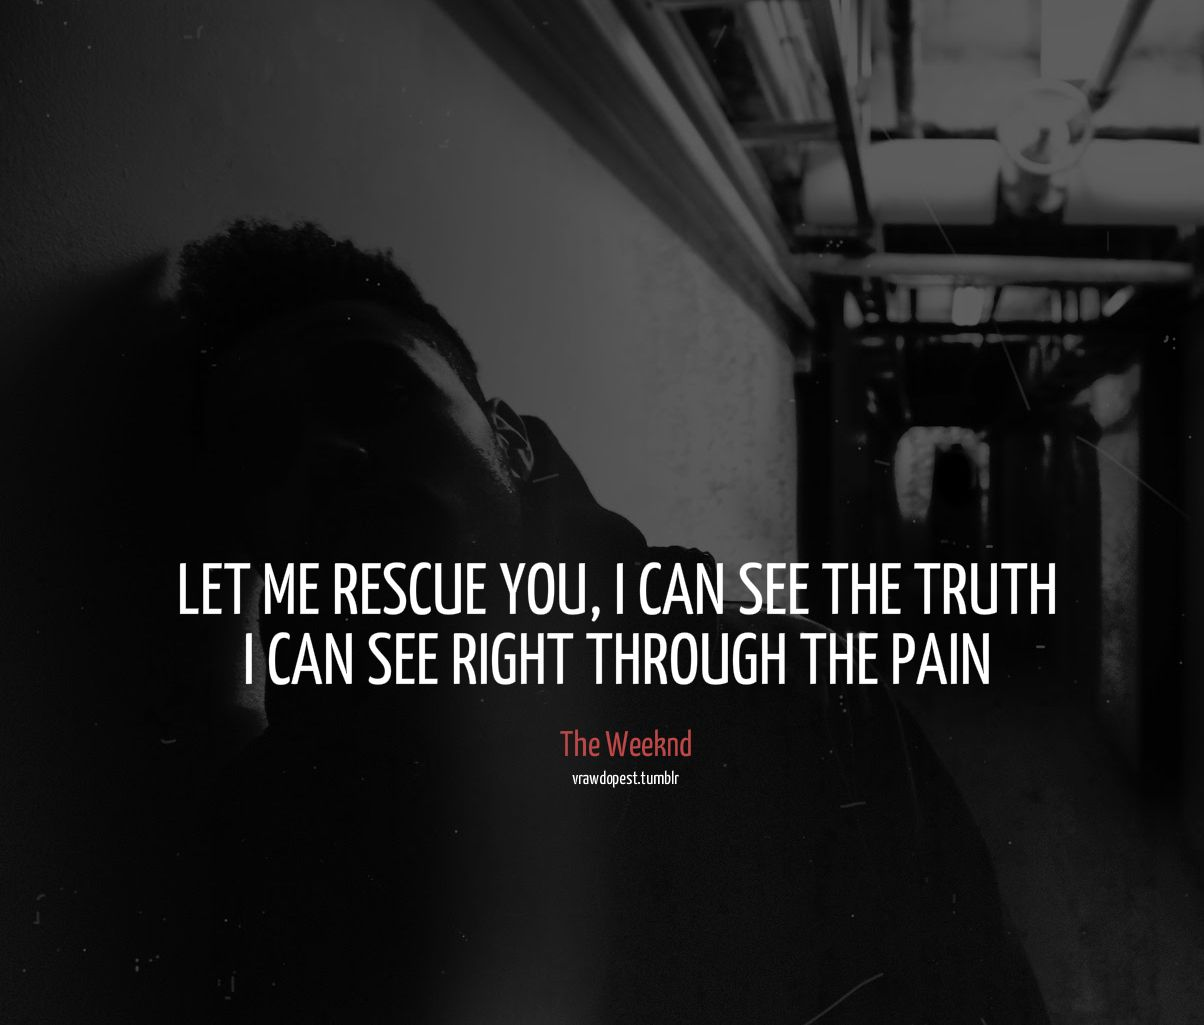 The Weeknd Quotes About Life   The Weeknd   The weeknd ...